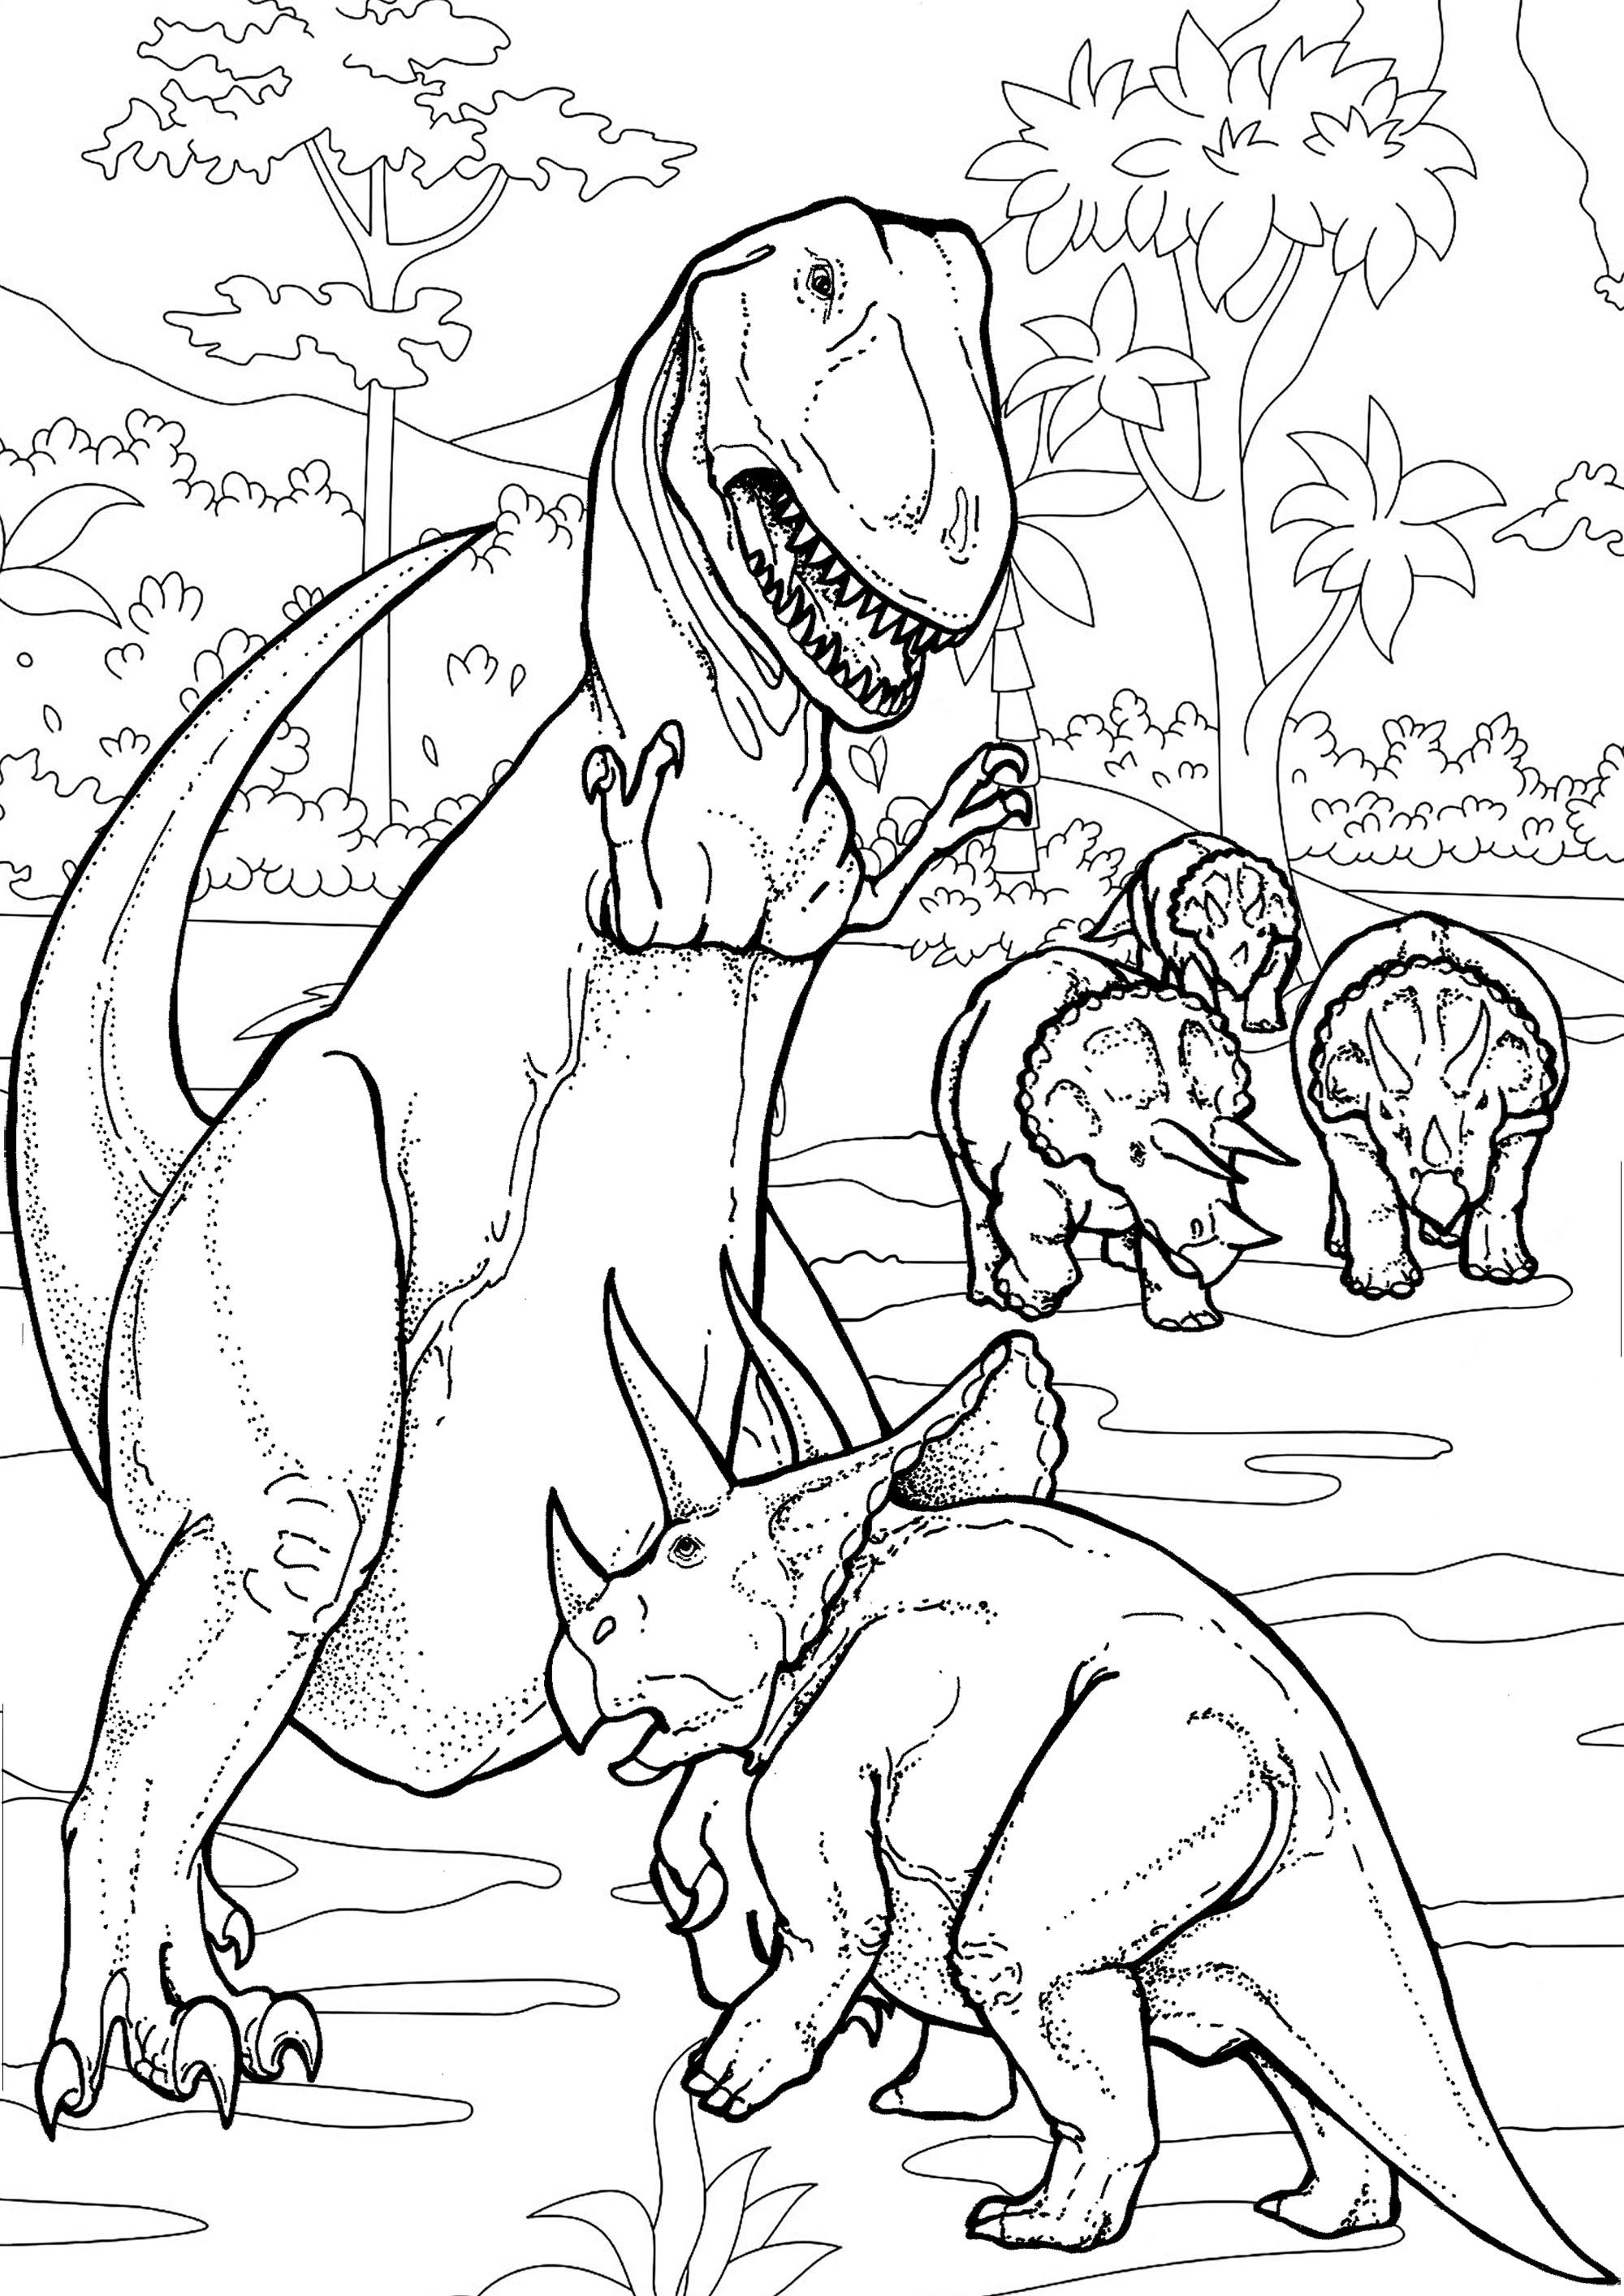 Dinosaurs Battle Dinosaurs Coloring Pages For Adults Just